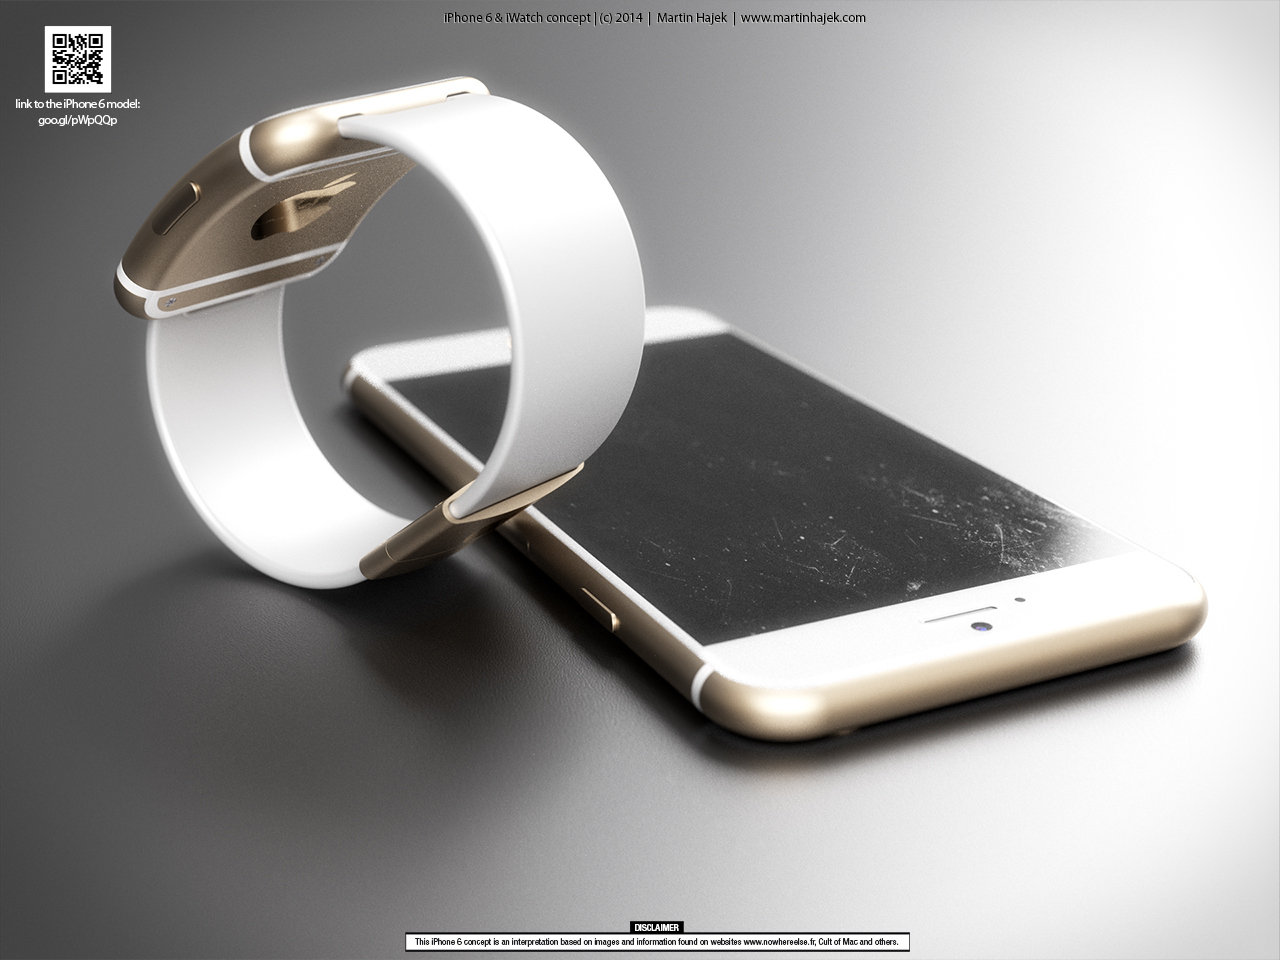 iphone6_iwatch_konzept2